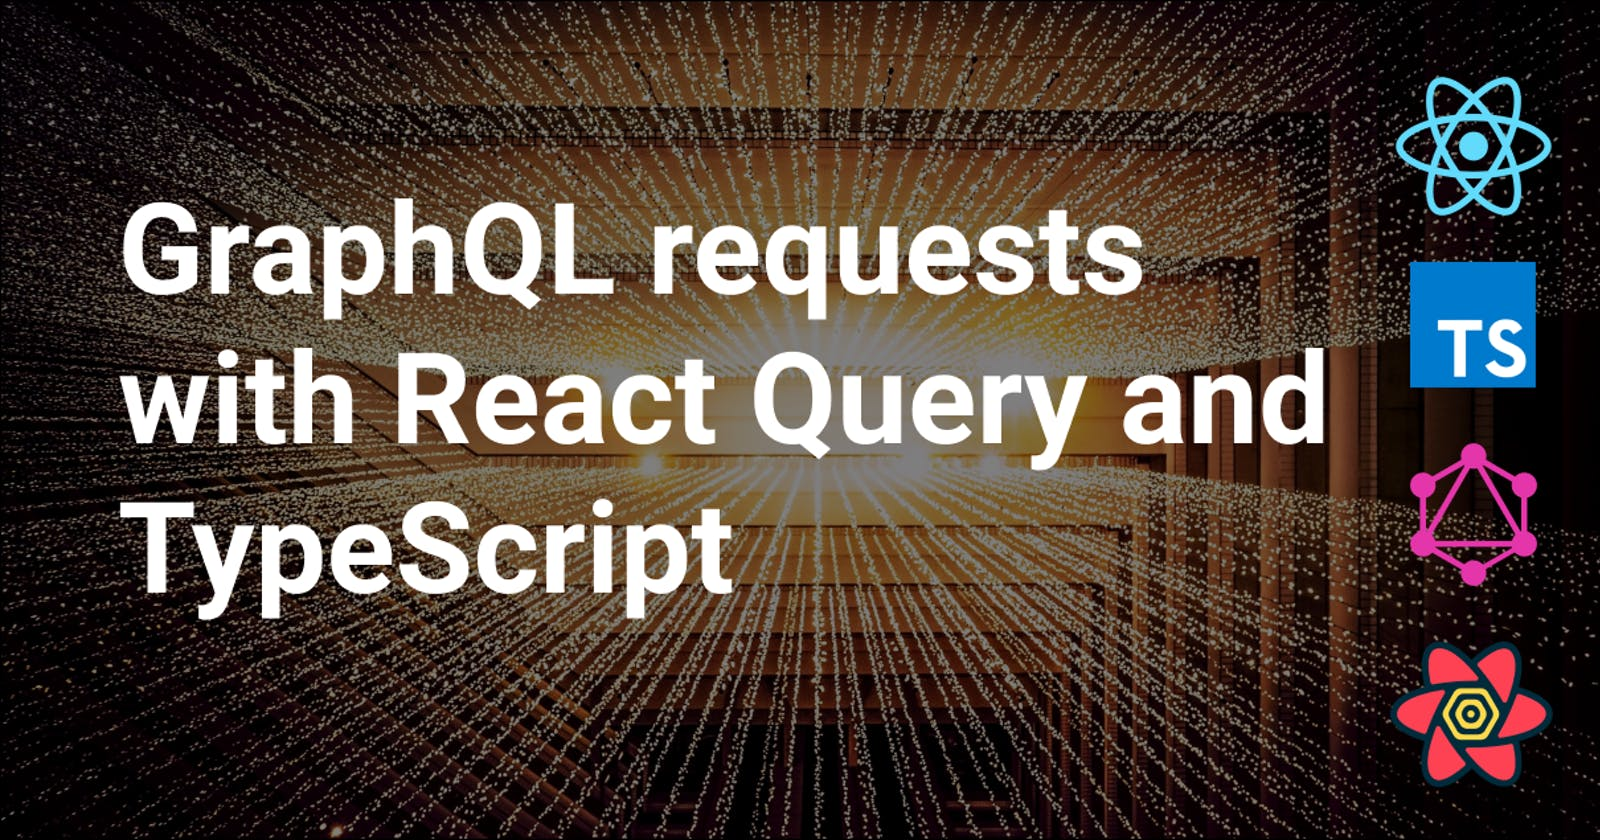 GraphQL requests made easy with React Query and TypeScript